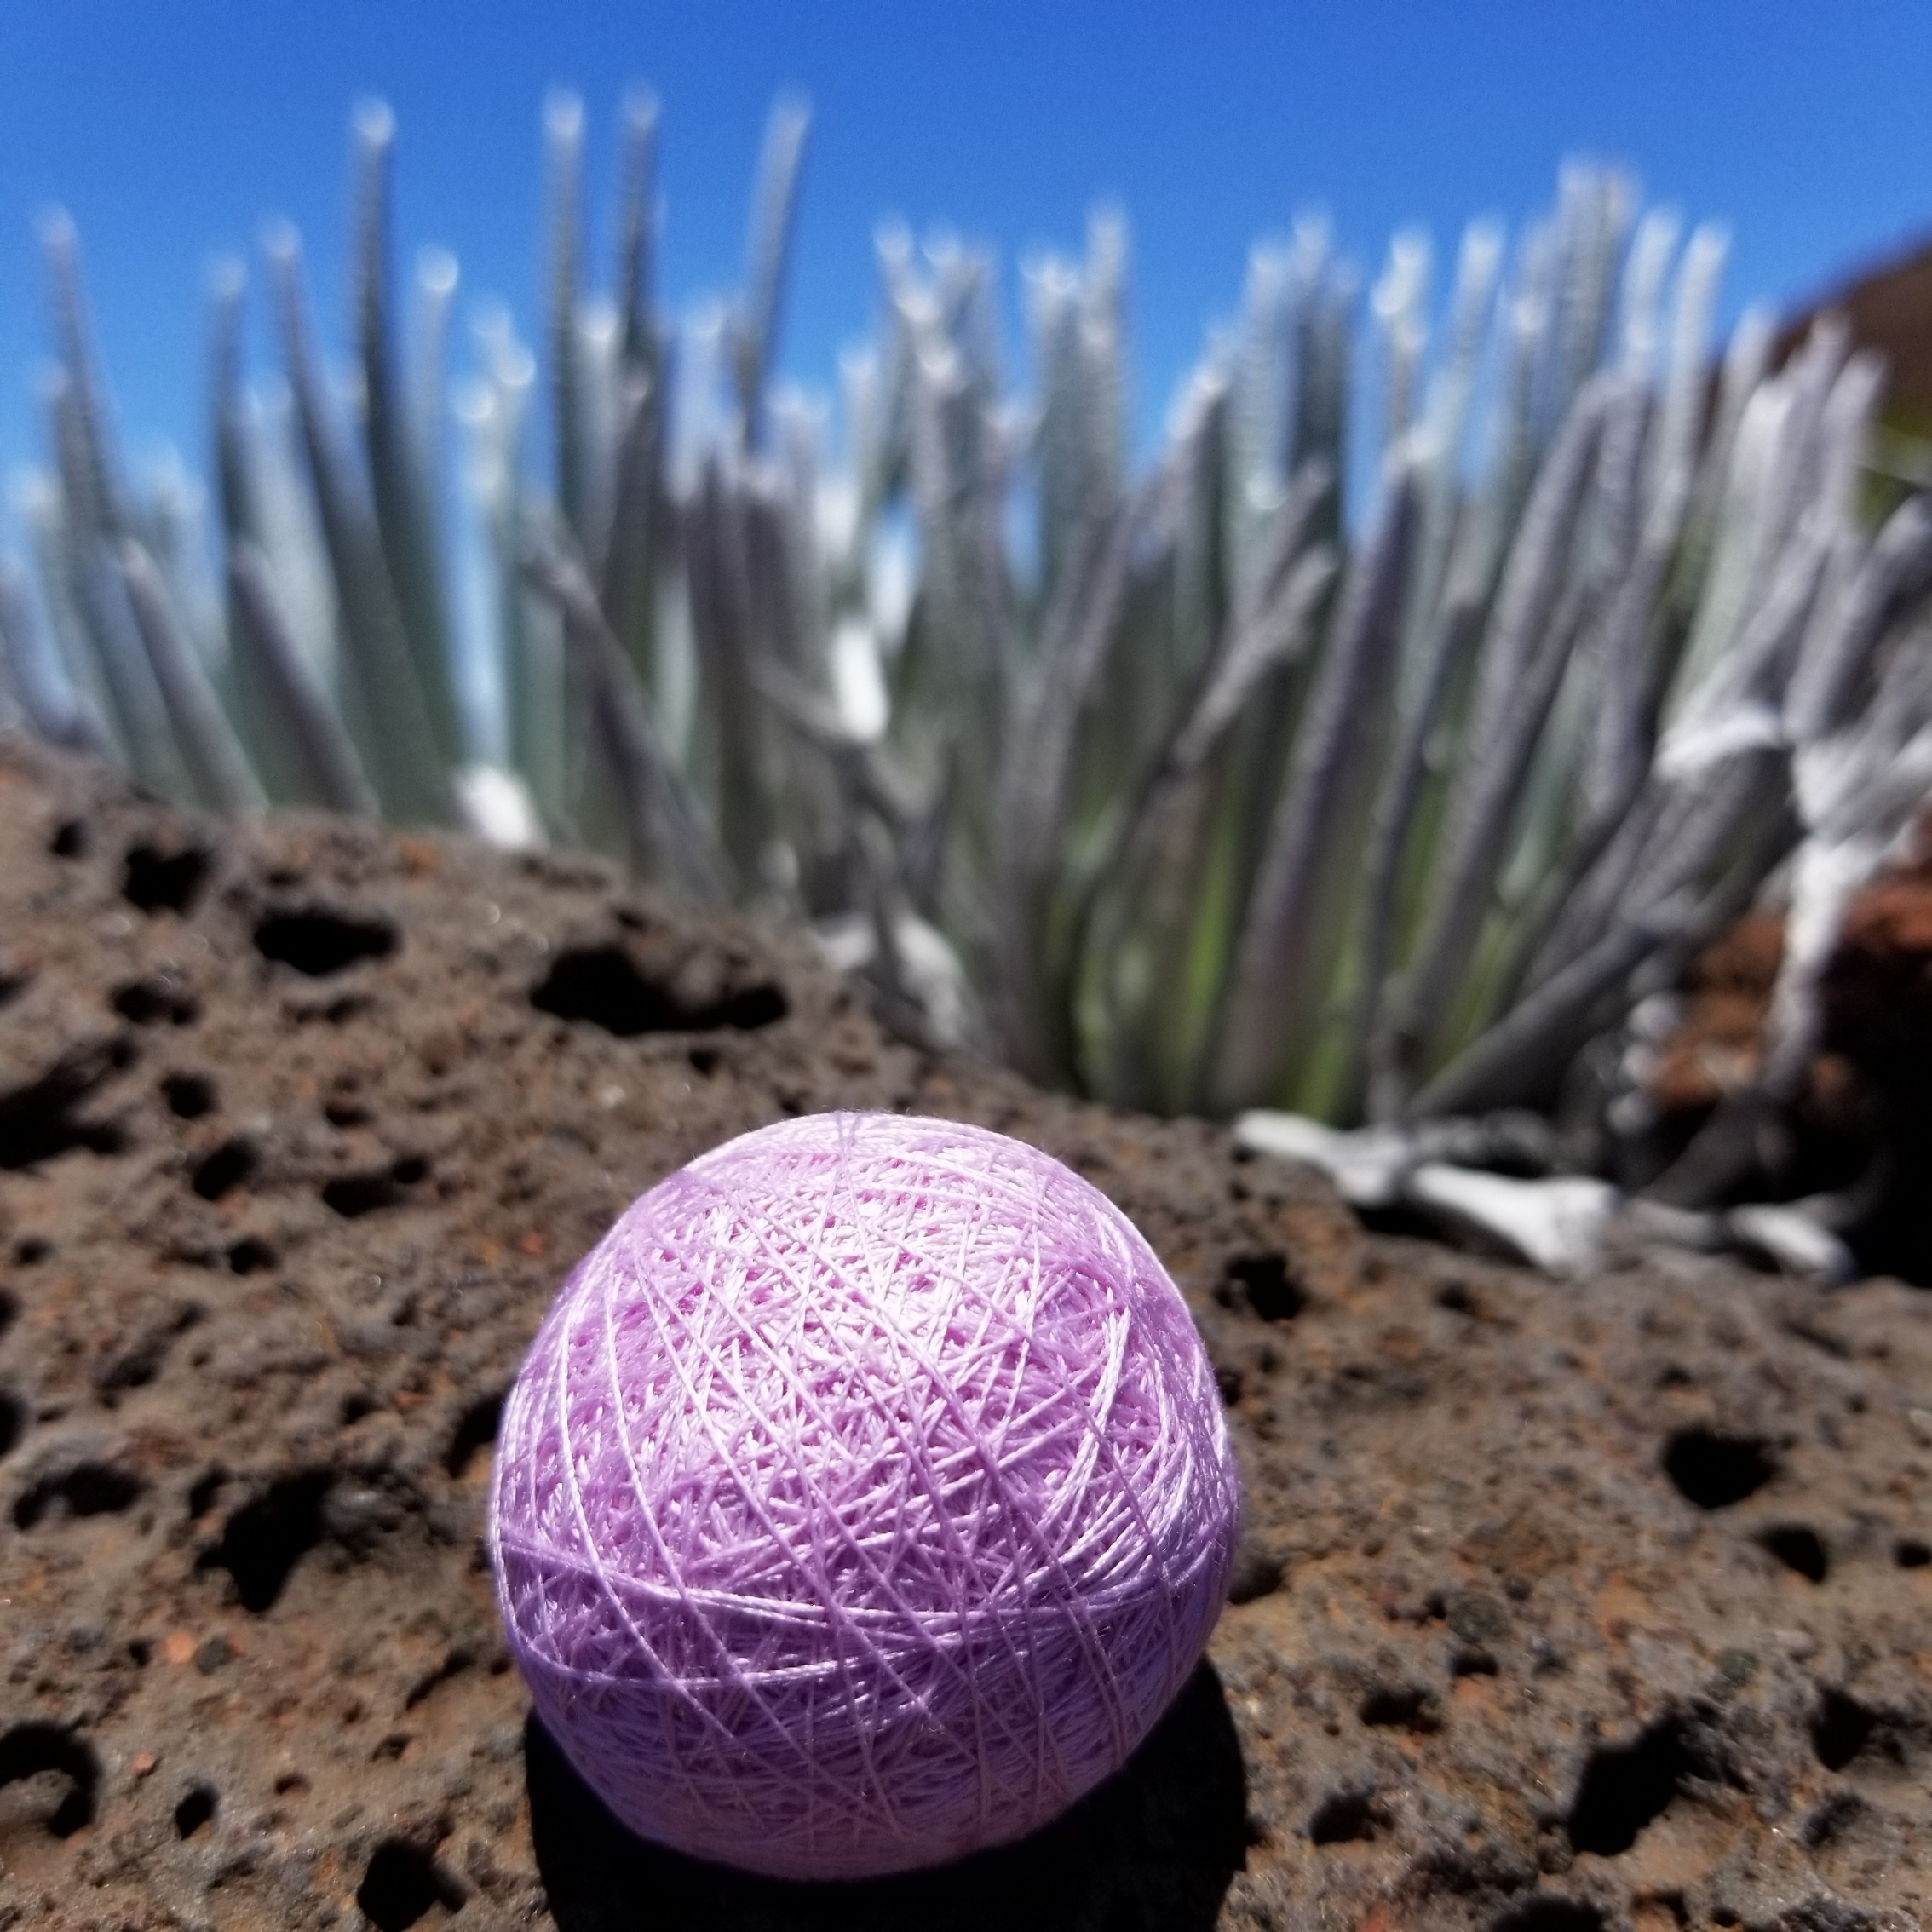 Silk thread orb installed at the driest place on Maui:  Haleakala Crater.